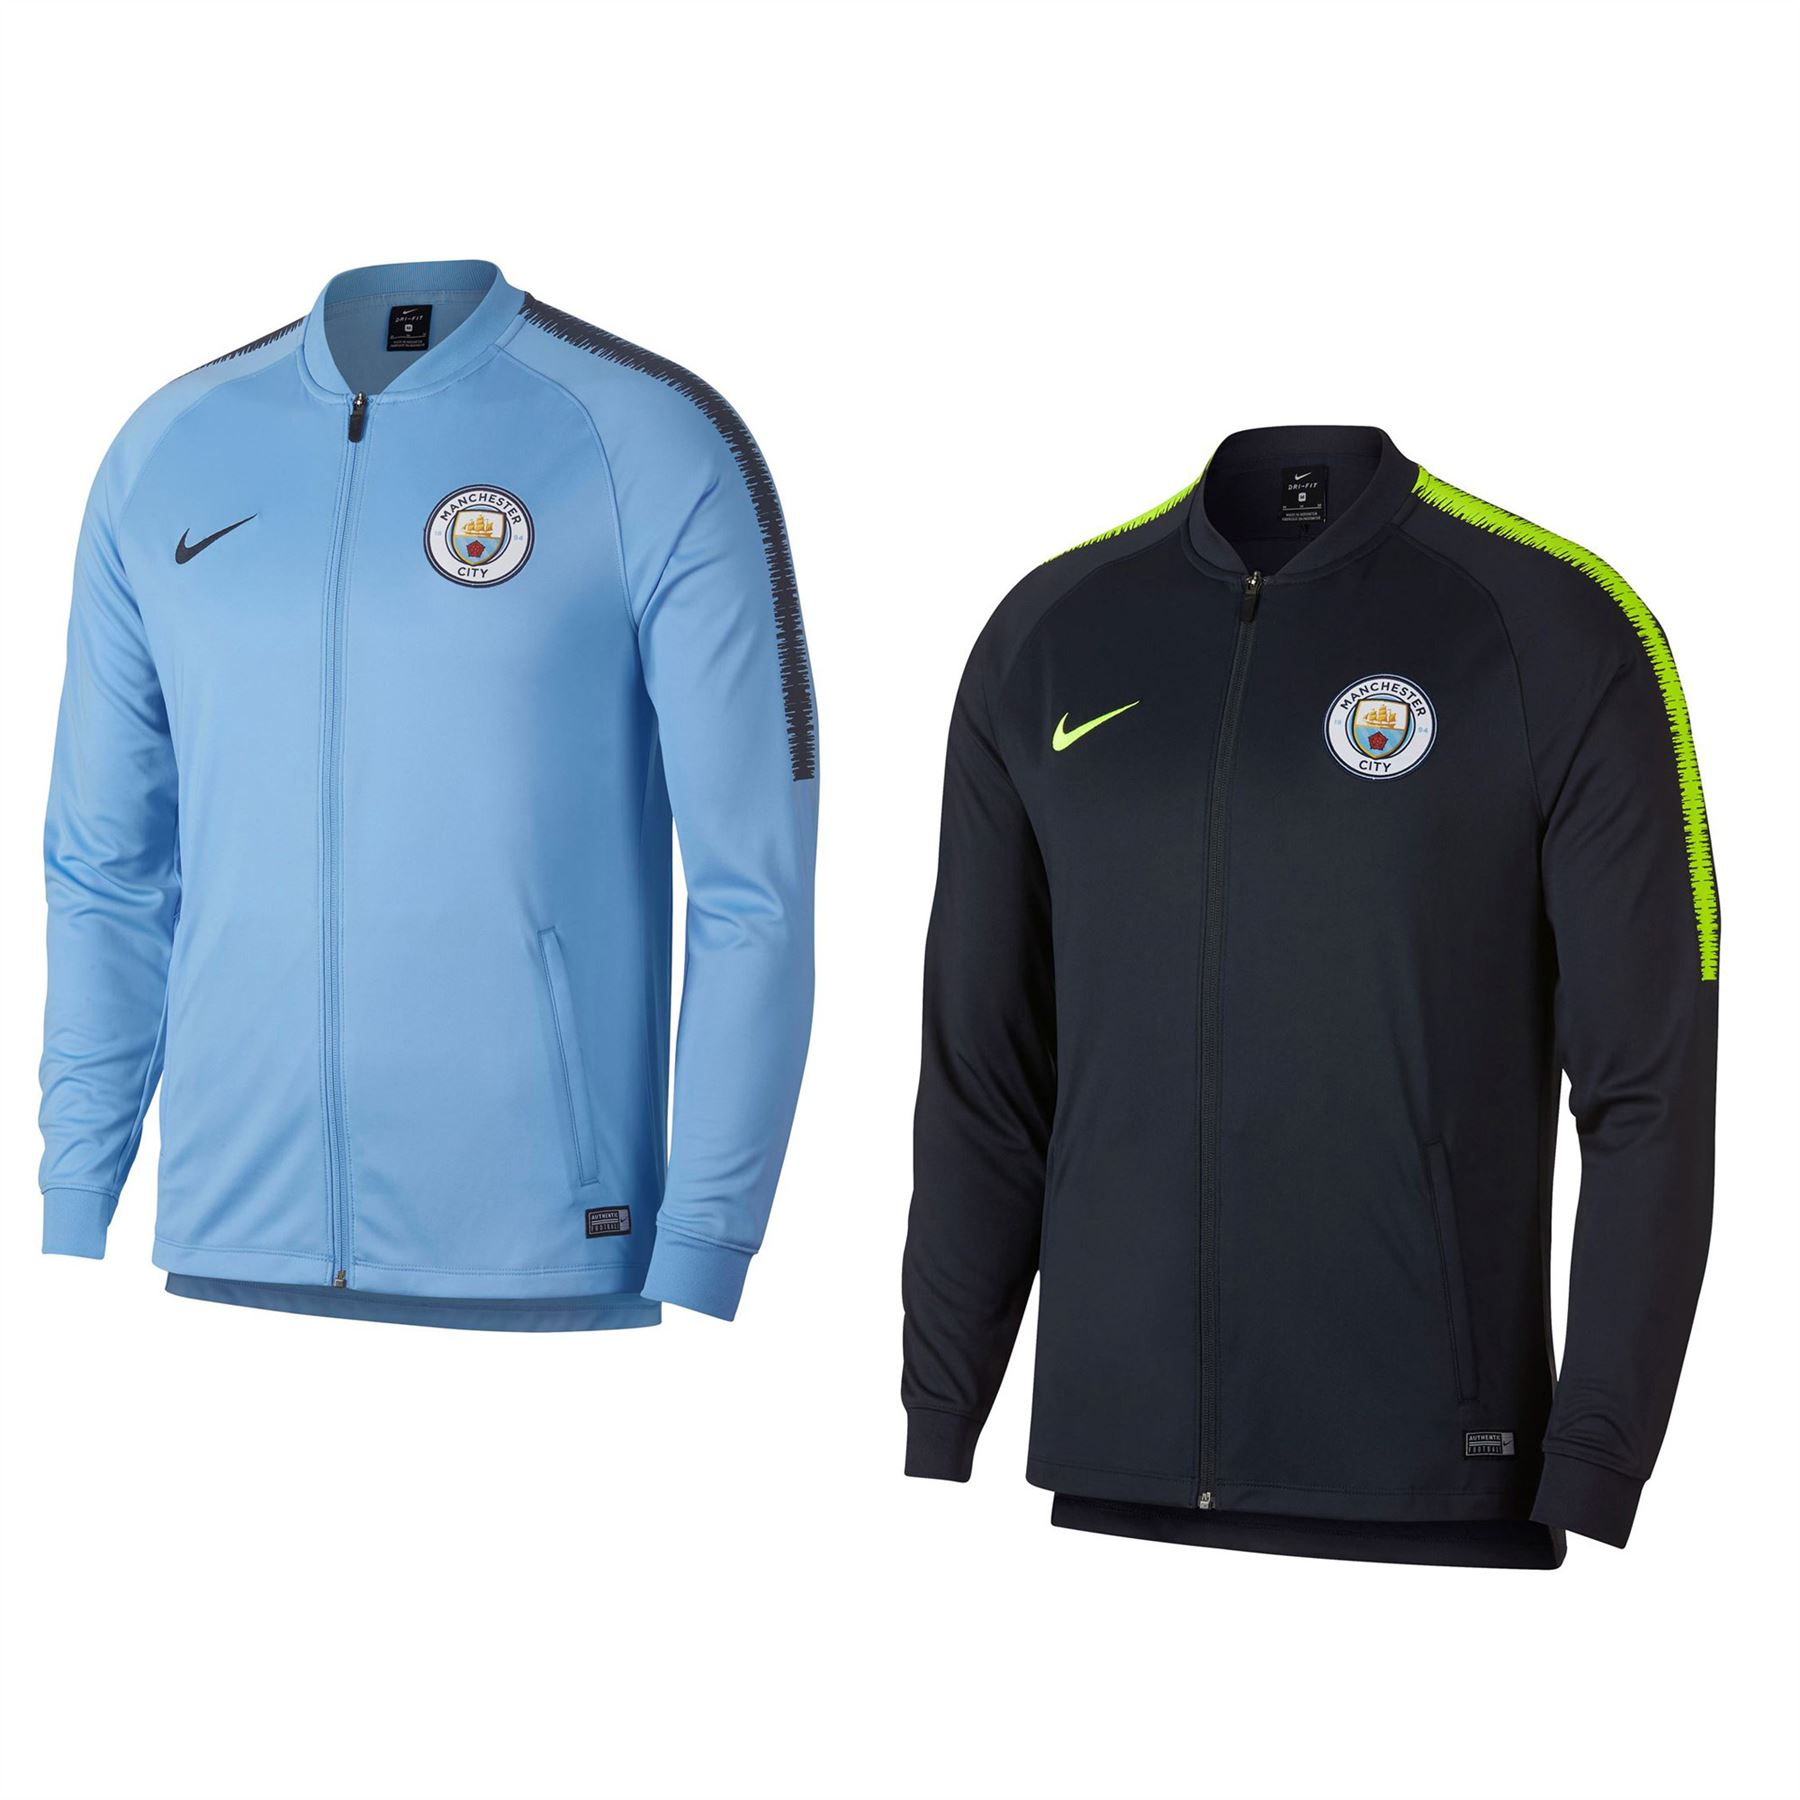 6b46b6df1e Nike Manchester City Track Jacket Mens Football Soccer Tracksuit Top ...